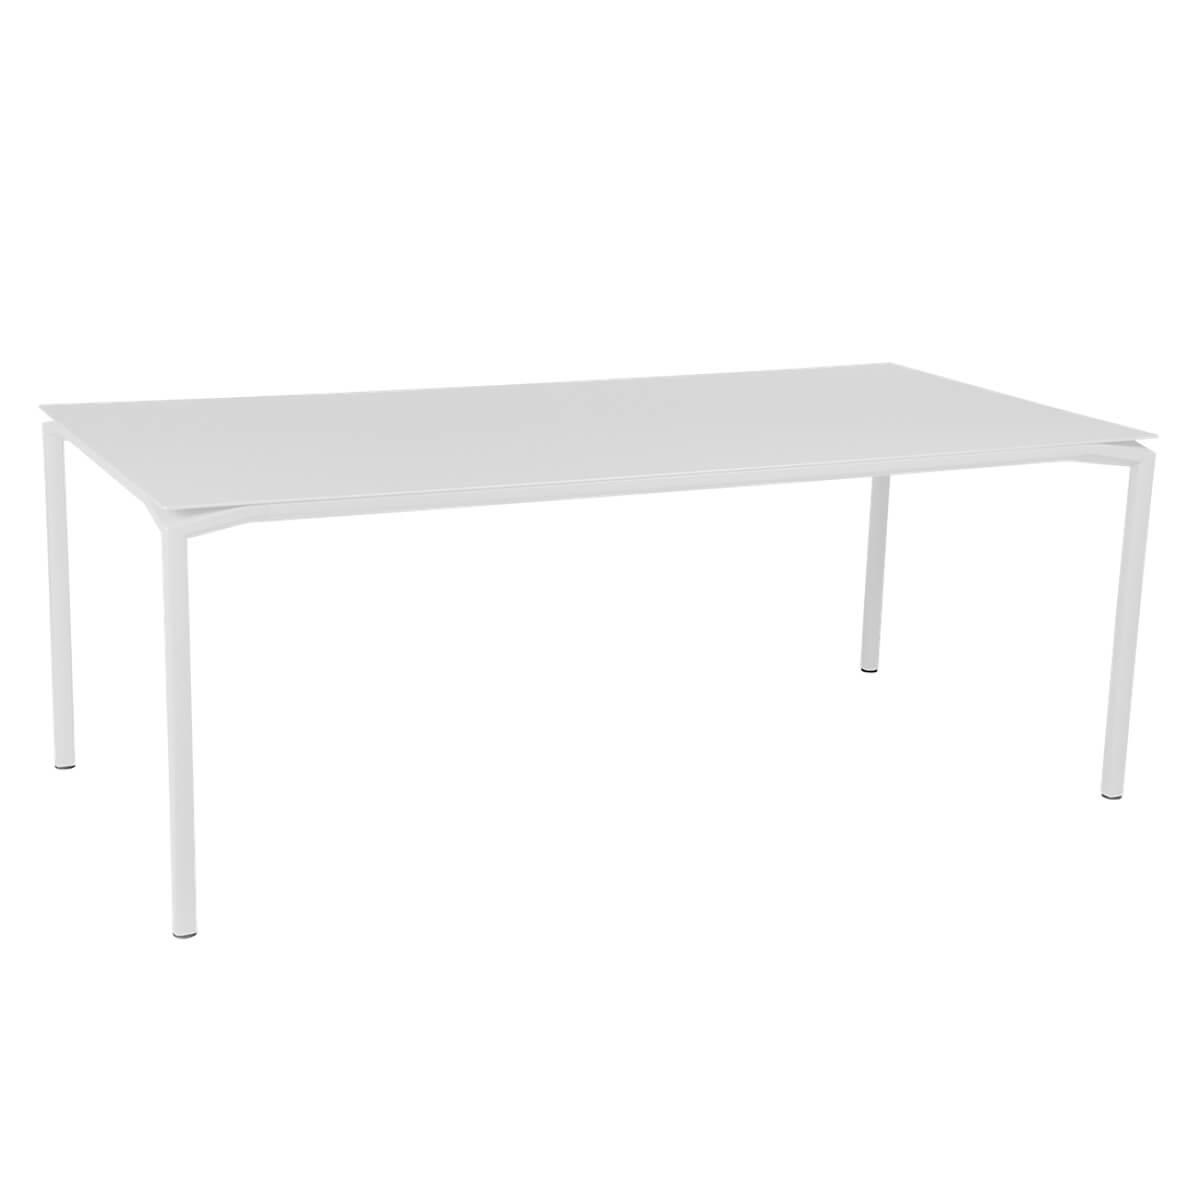 Table 95x195cm CALVI Fermob blanc coton